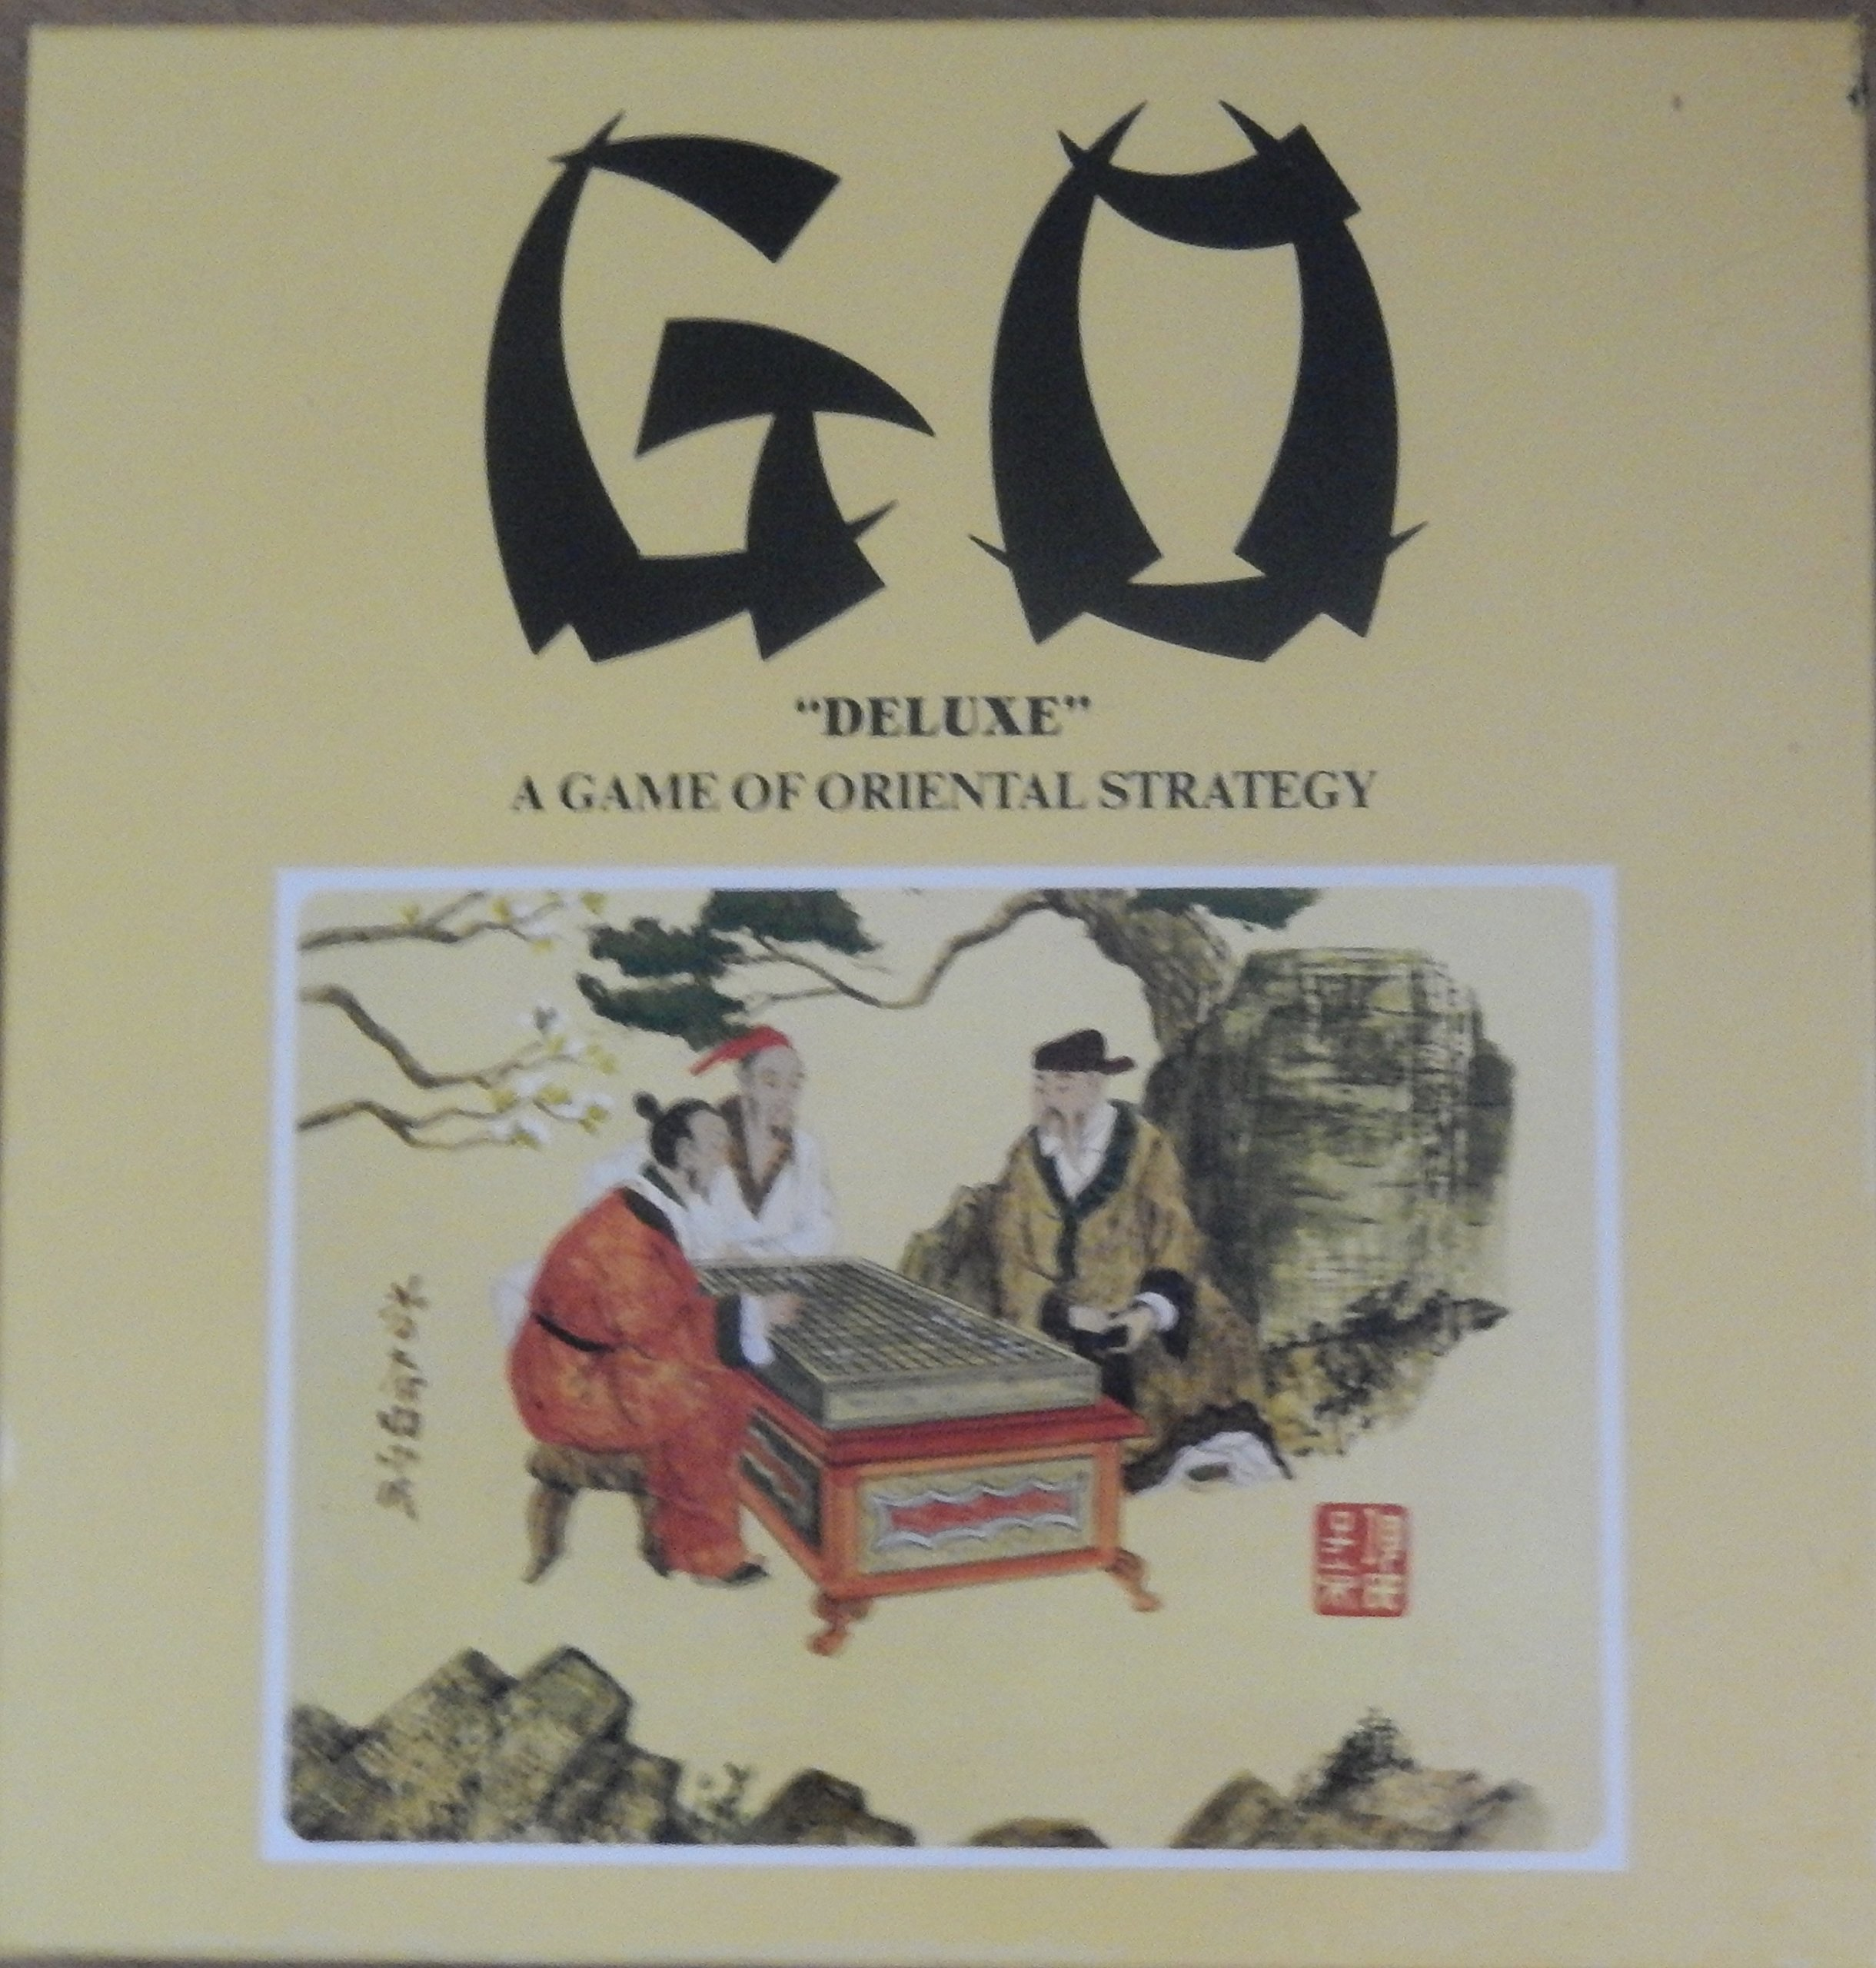 1982 The oriental game of ''Go''